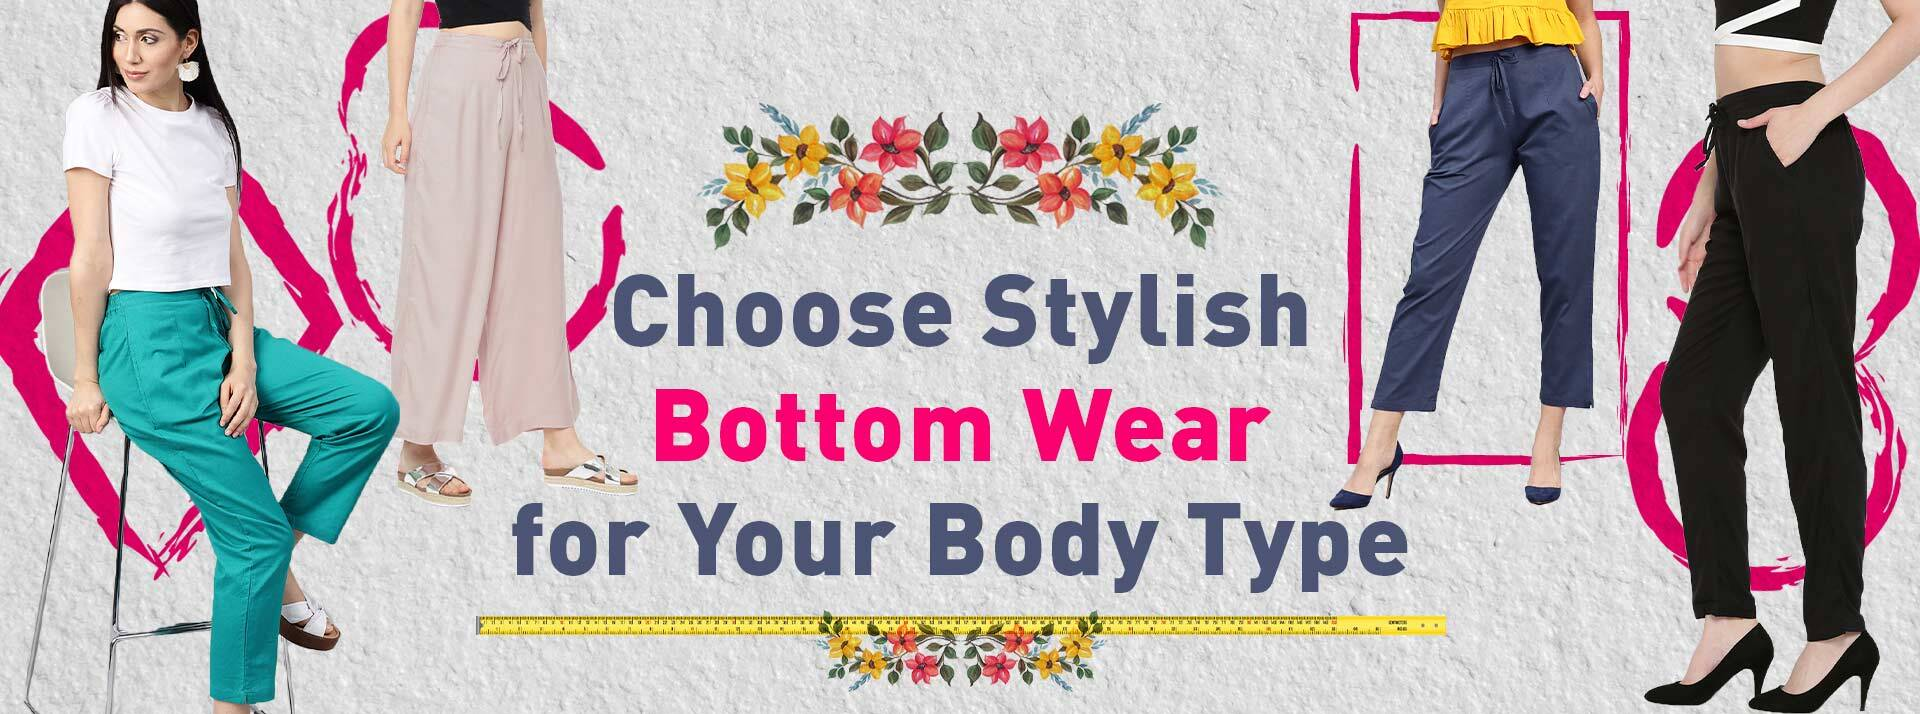 Choose Stylish Bottom Wear for your Body Type